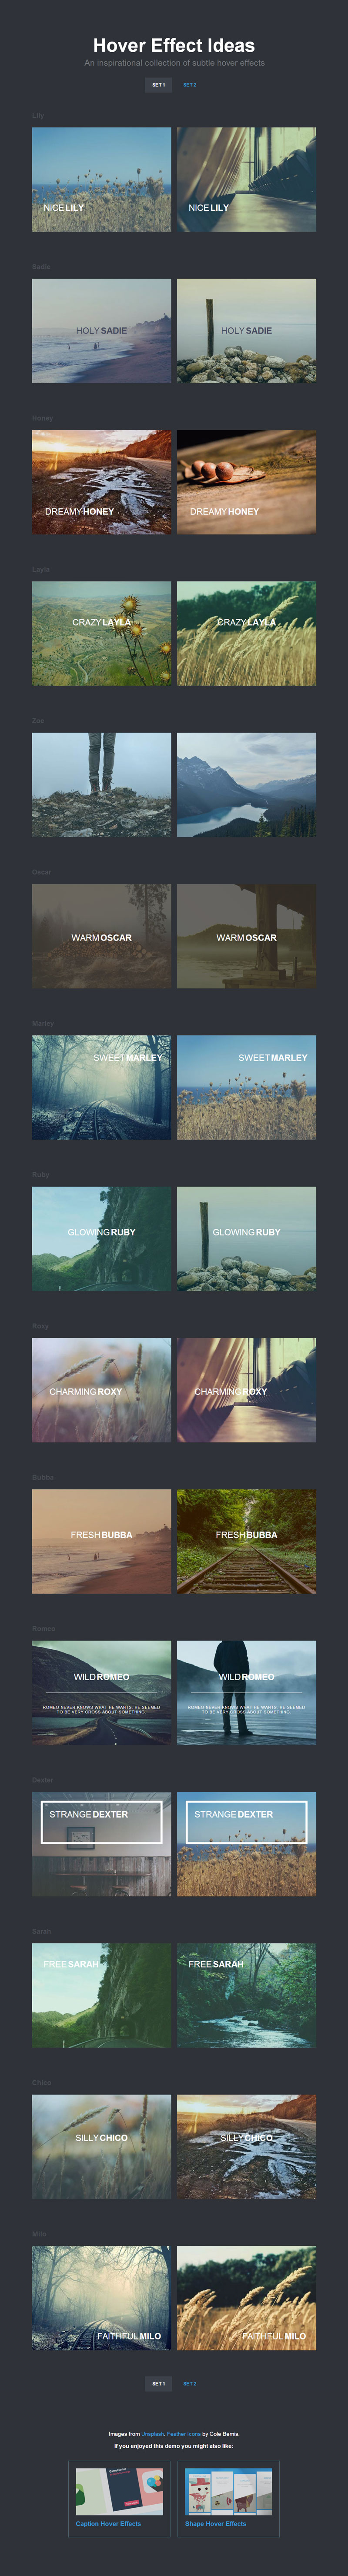 Hover-Effect-Ideas---Set-1